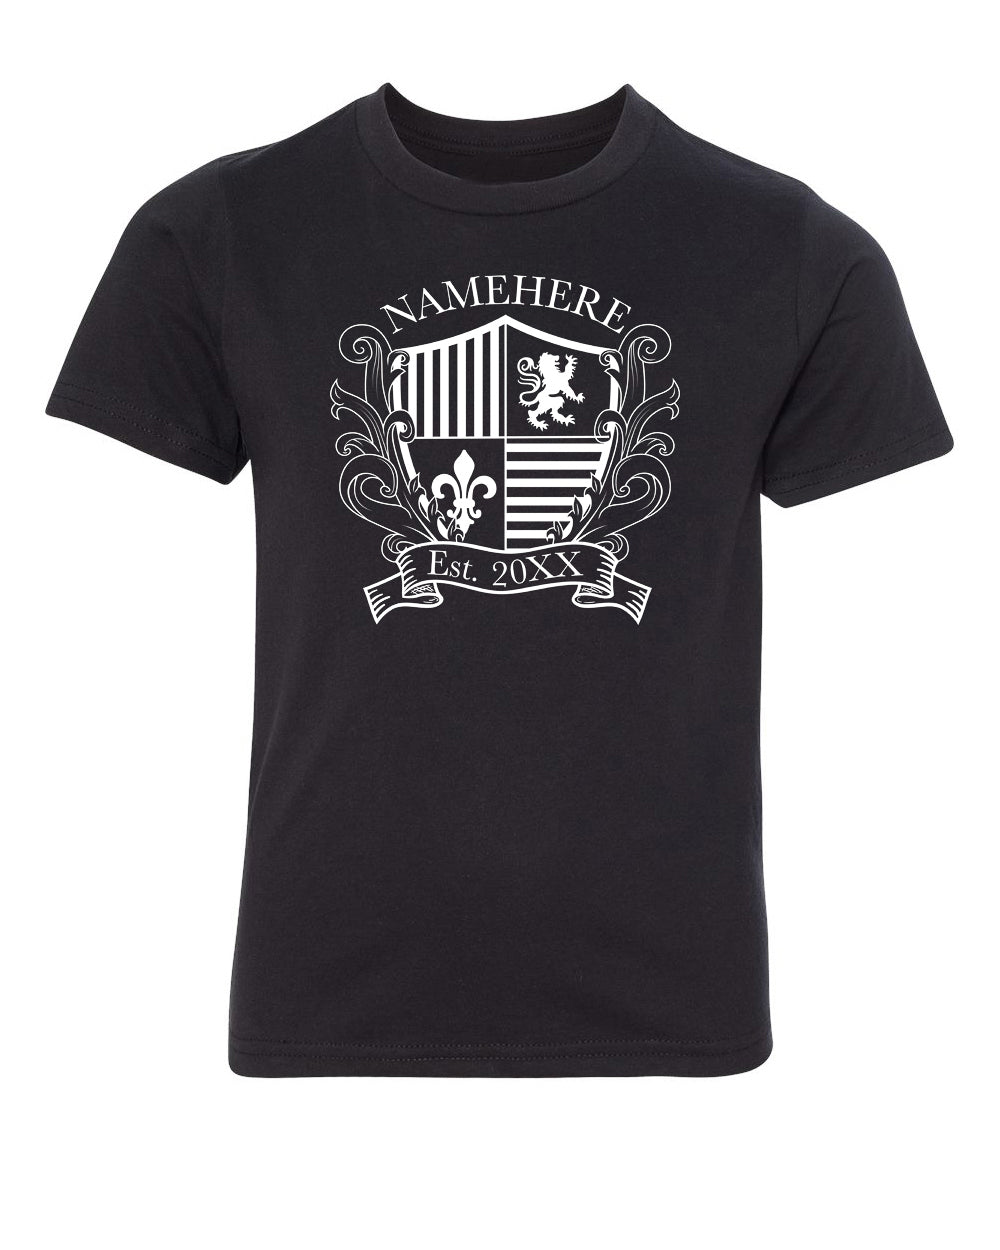 Shirt - Family Crest Custom Name And Date -Family Reunion Youth T-shirts